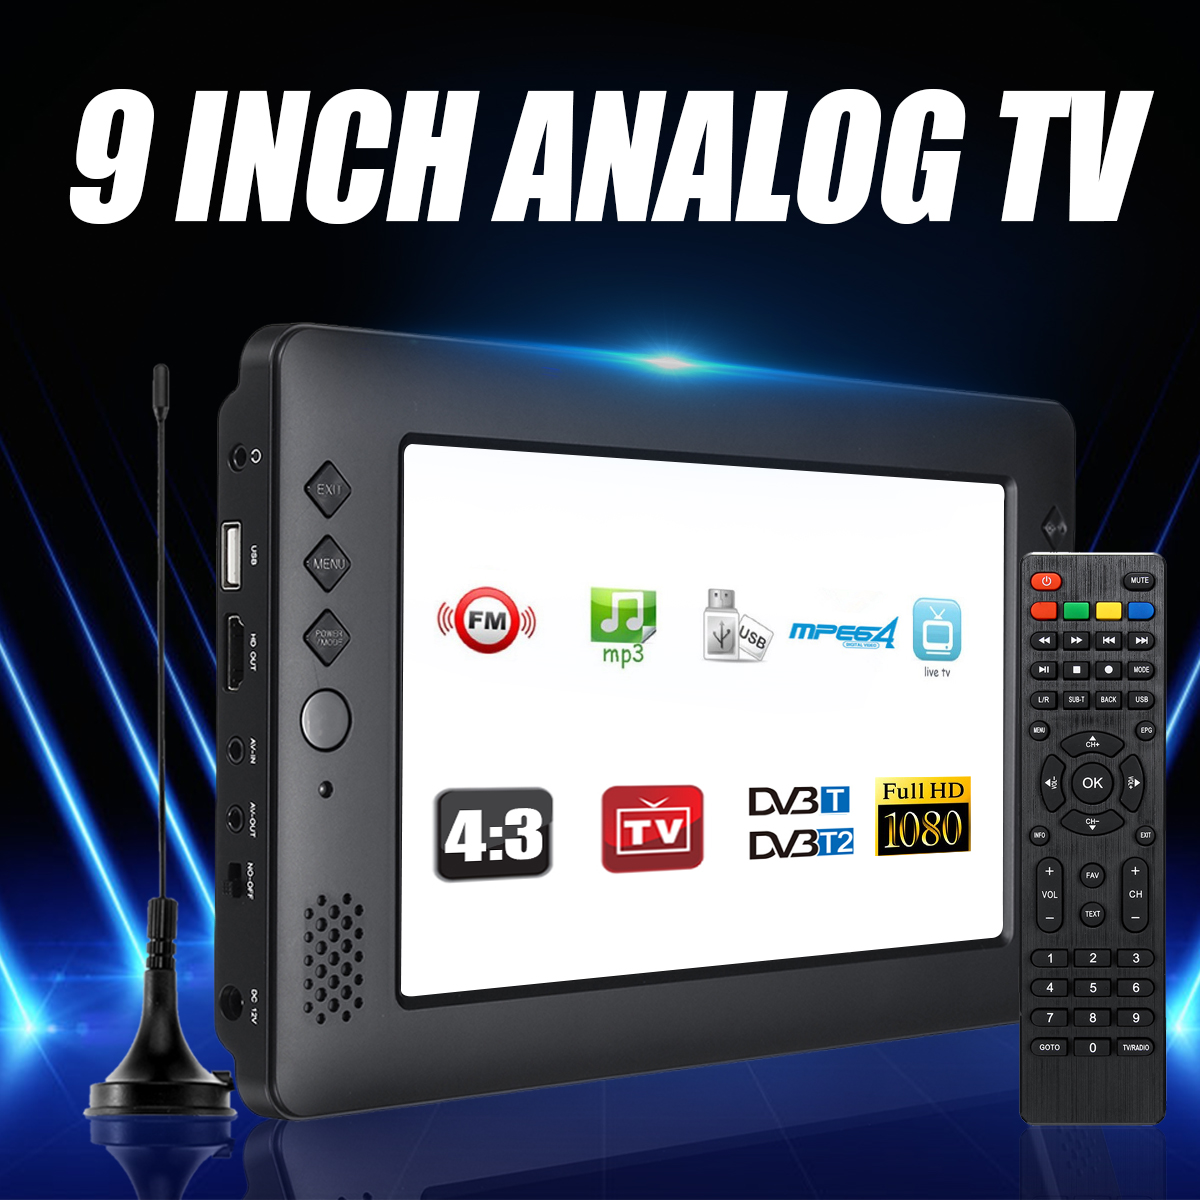 9 Inch Portable Mini TV DVB-T/T2 DTV FM HD 1080P H.265 Digital And Analog Led Televisions Support MP4 AC3 HDMI Monitor image